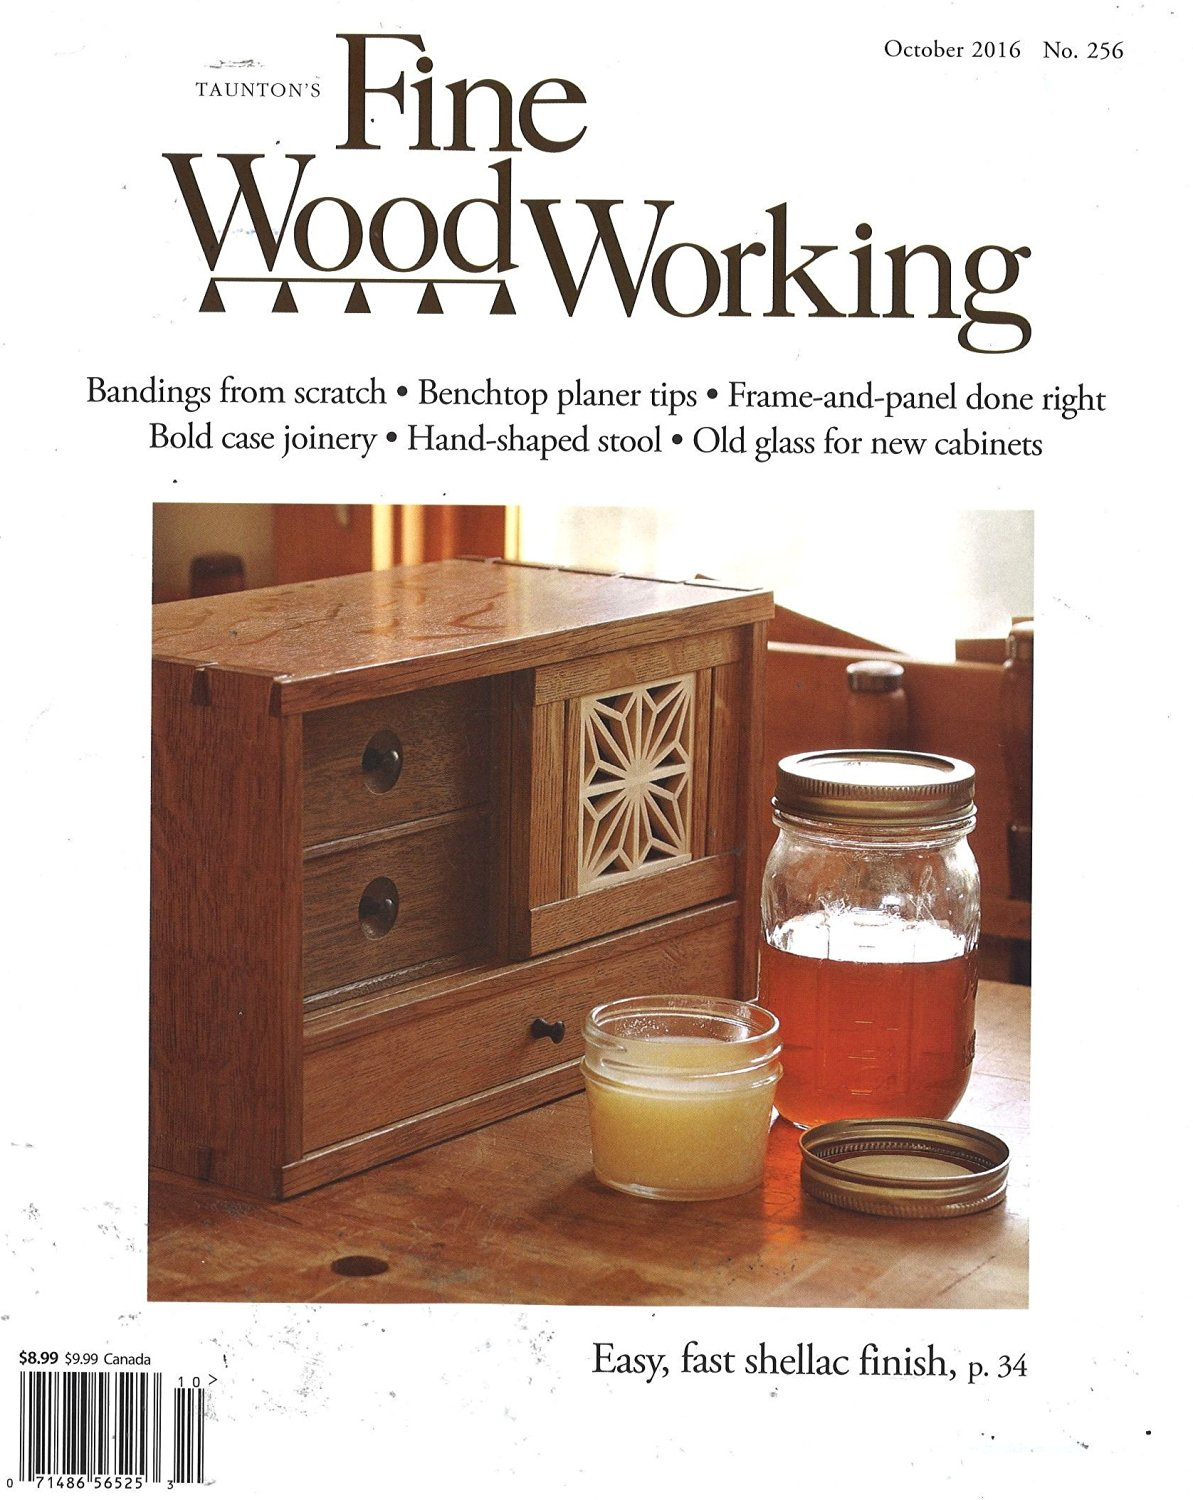 Fine Woodworking Magazine - DiscountMags.com